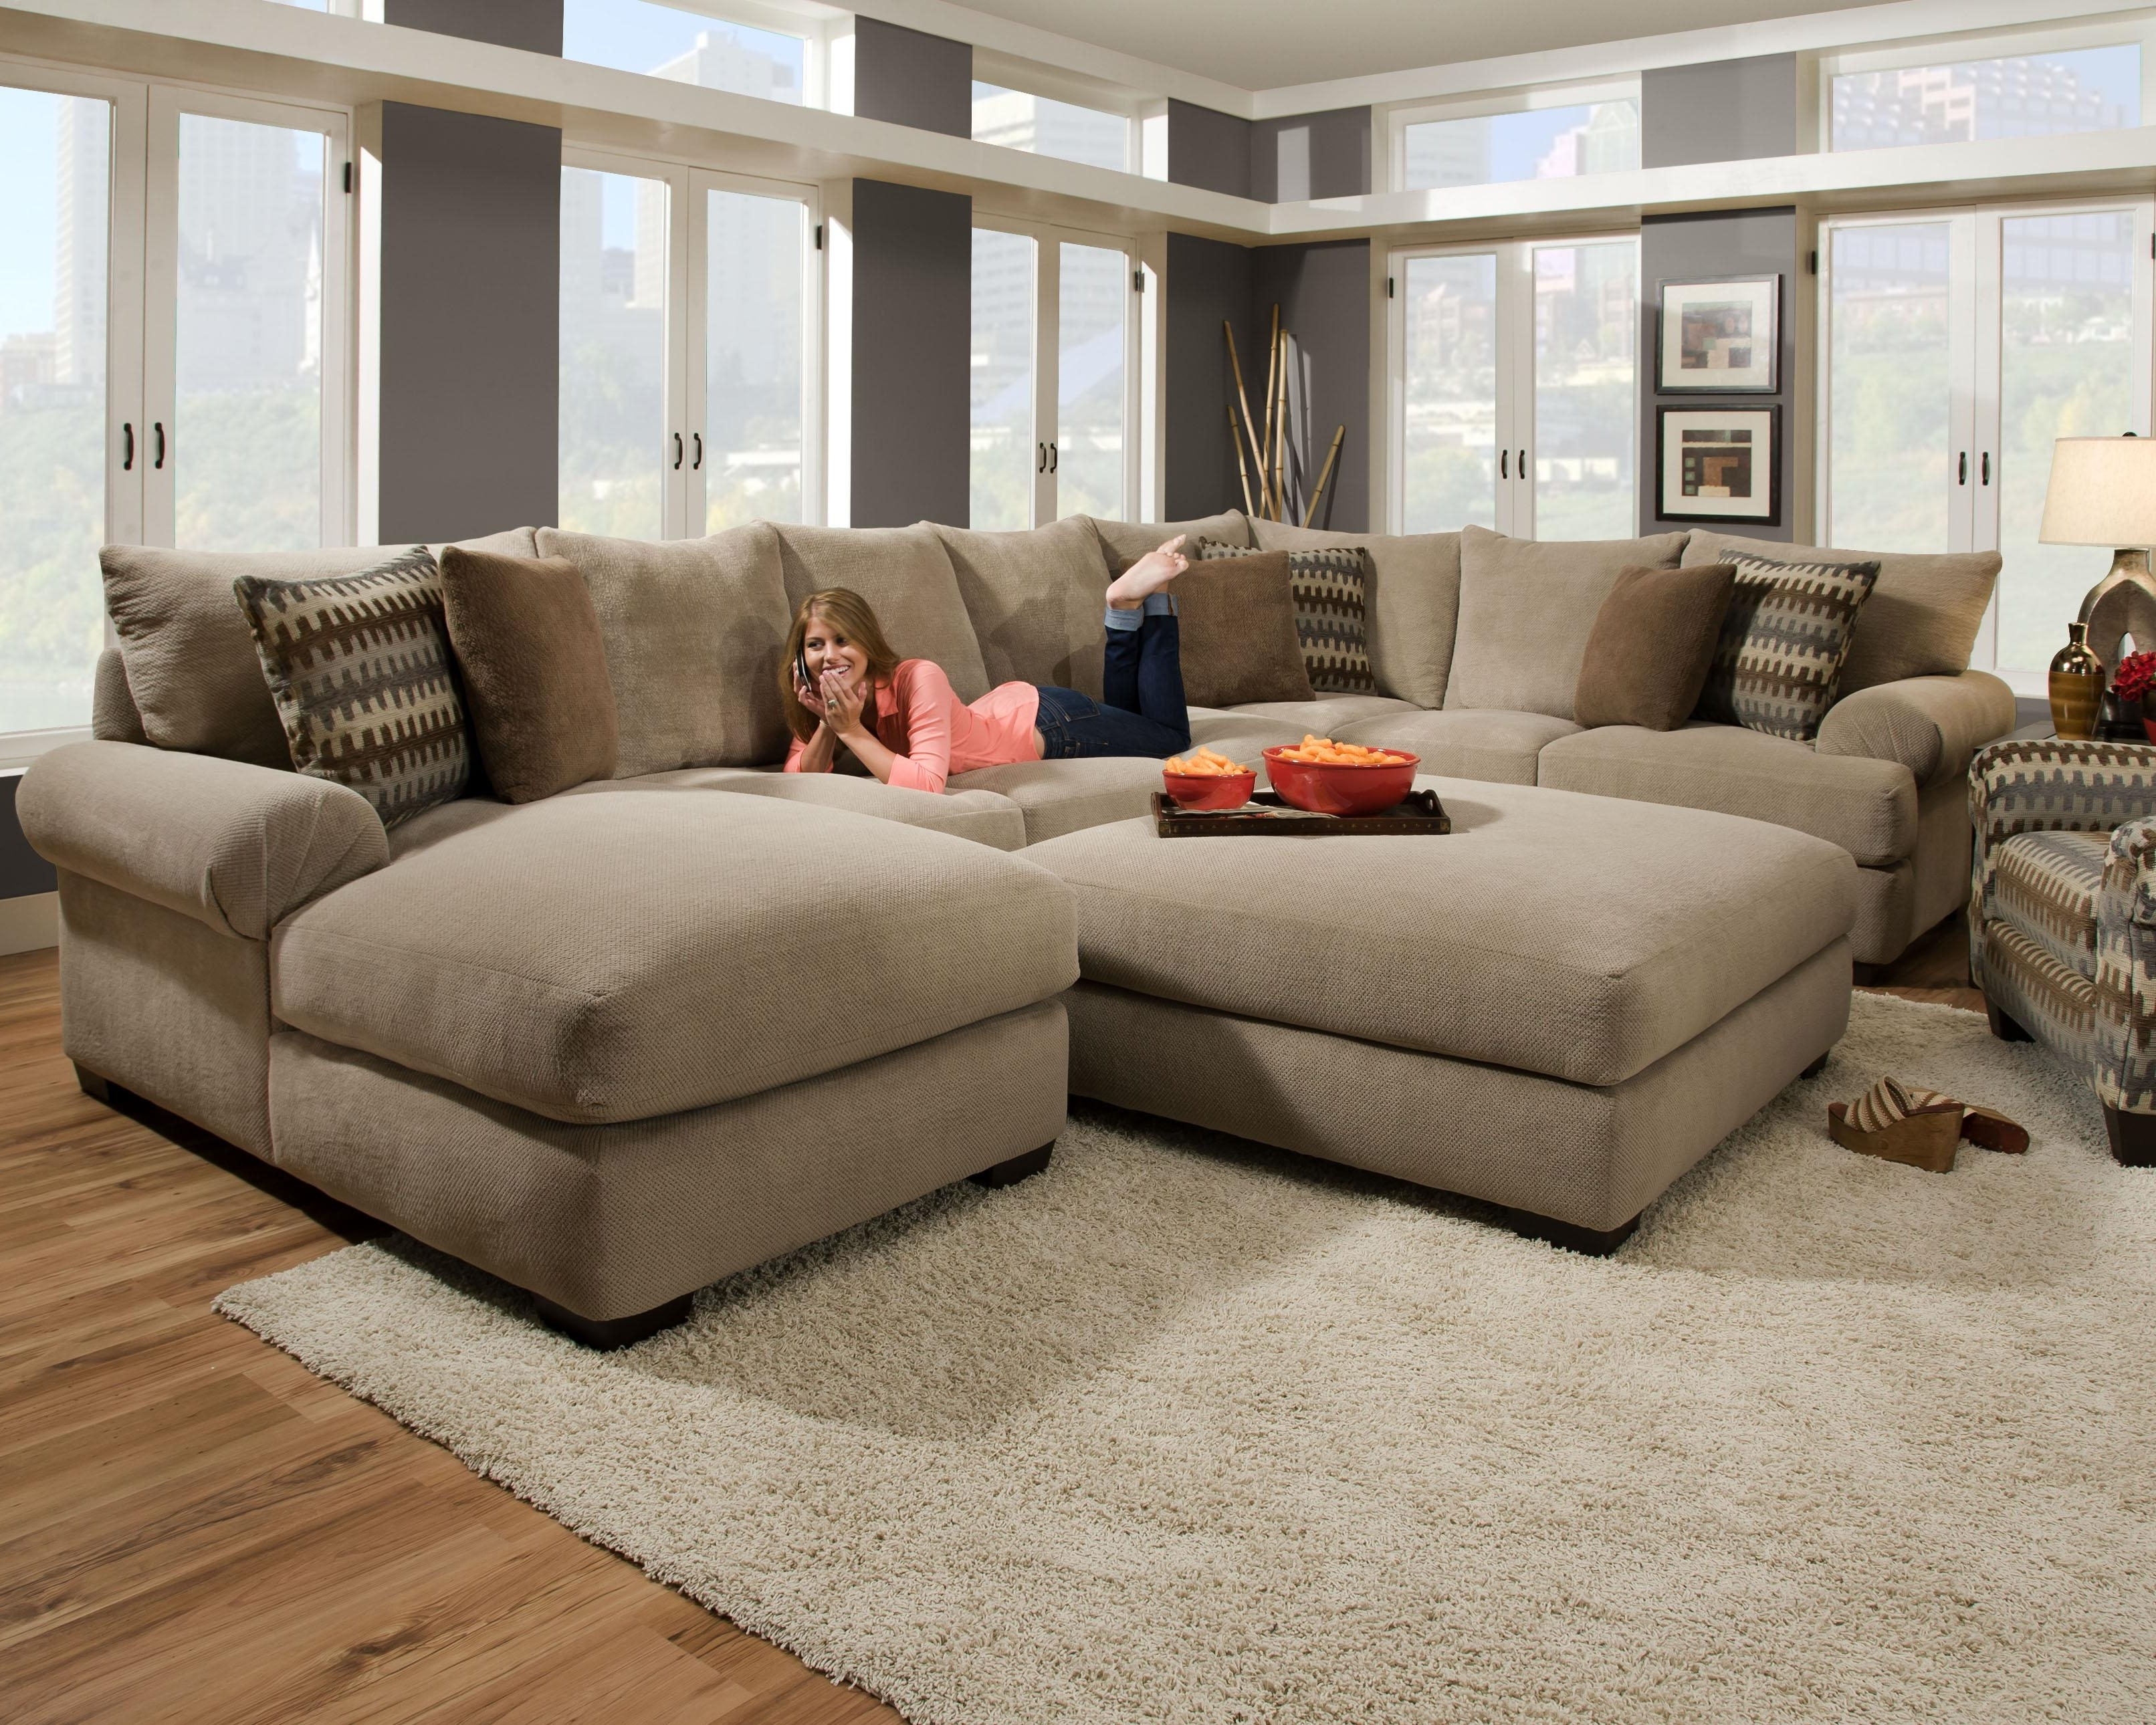 Sofas : Oversized Sofa Cheap Sectional Sofas Chaise Sofa Modular With Regard To Best And Newest Cheap Sectionals With Ottoman (View 18 of 20)